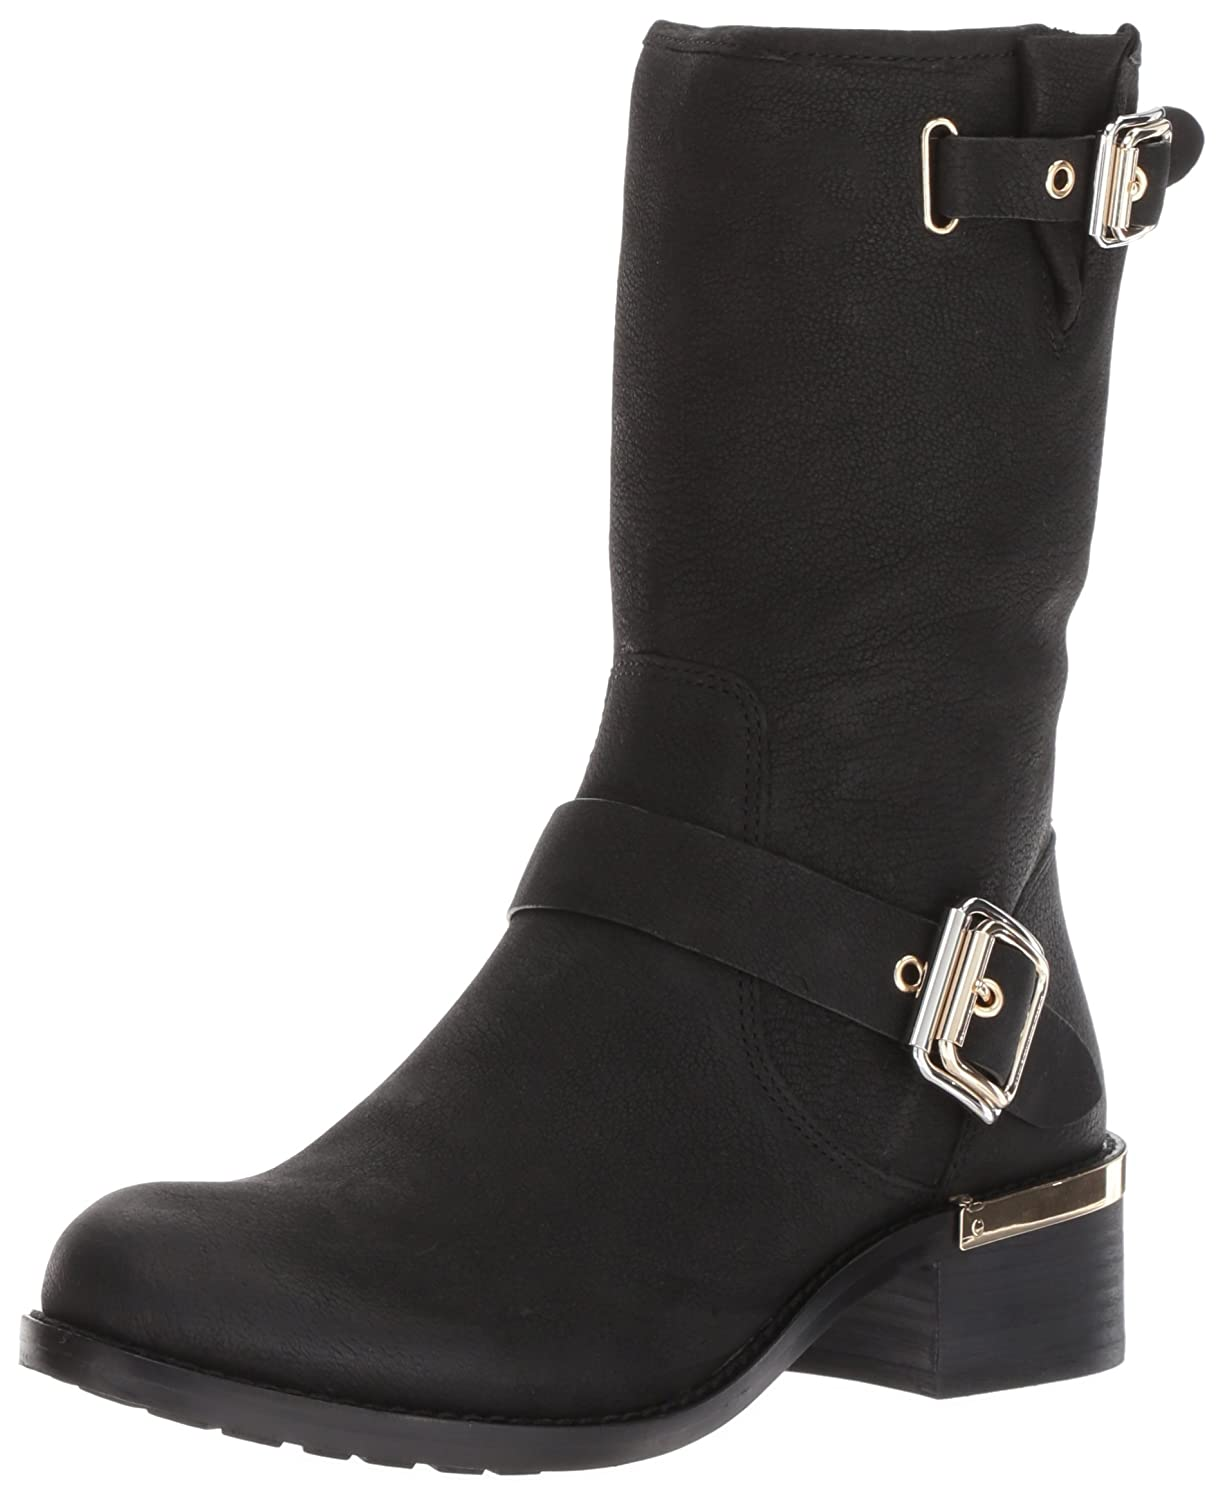 Vince Camuto Women's Windy Motorcycle Boot B071ZF7N2L 11 B(M) US|Black